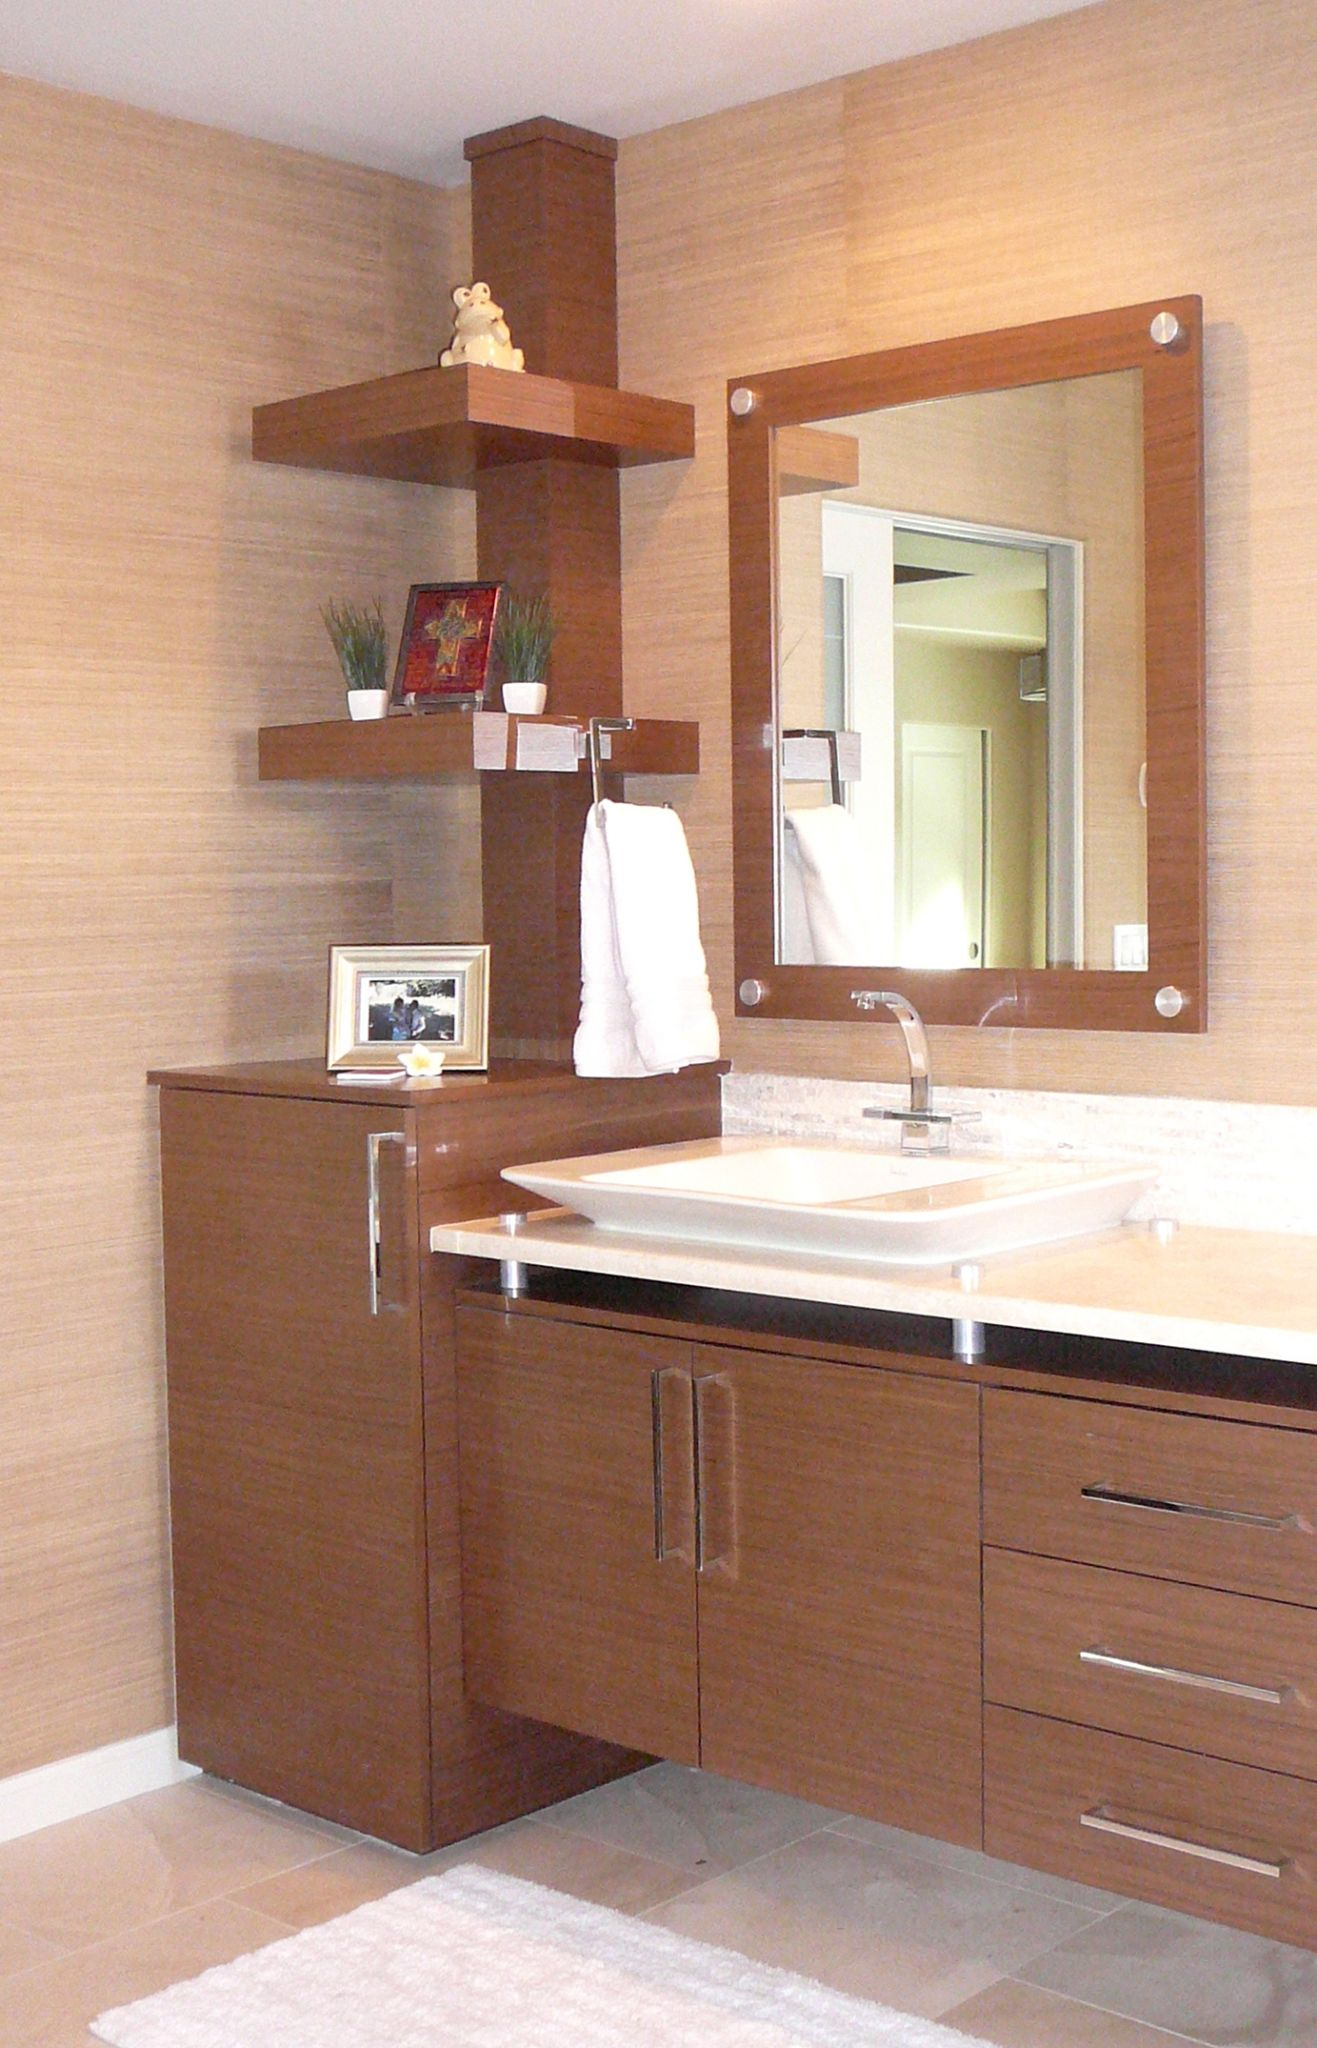 Crystal Cabinet Works Bkc Kitchen And Bath